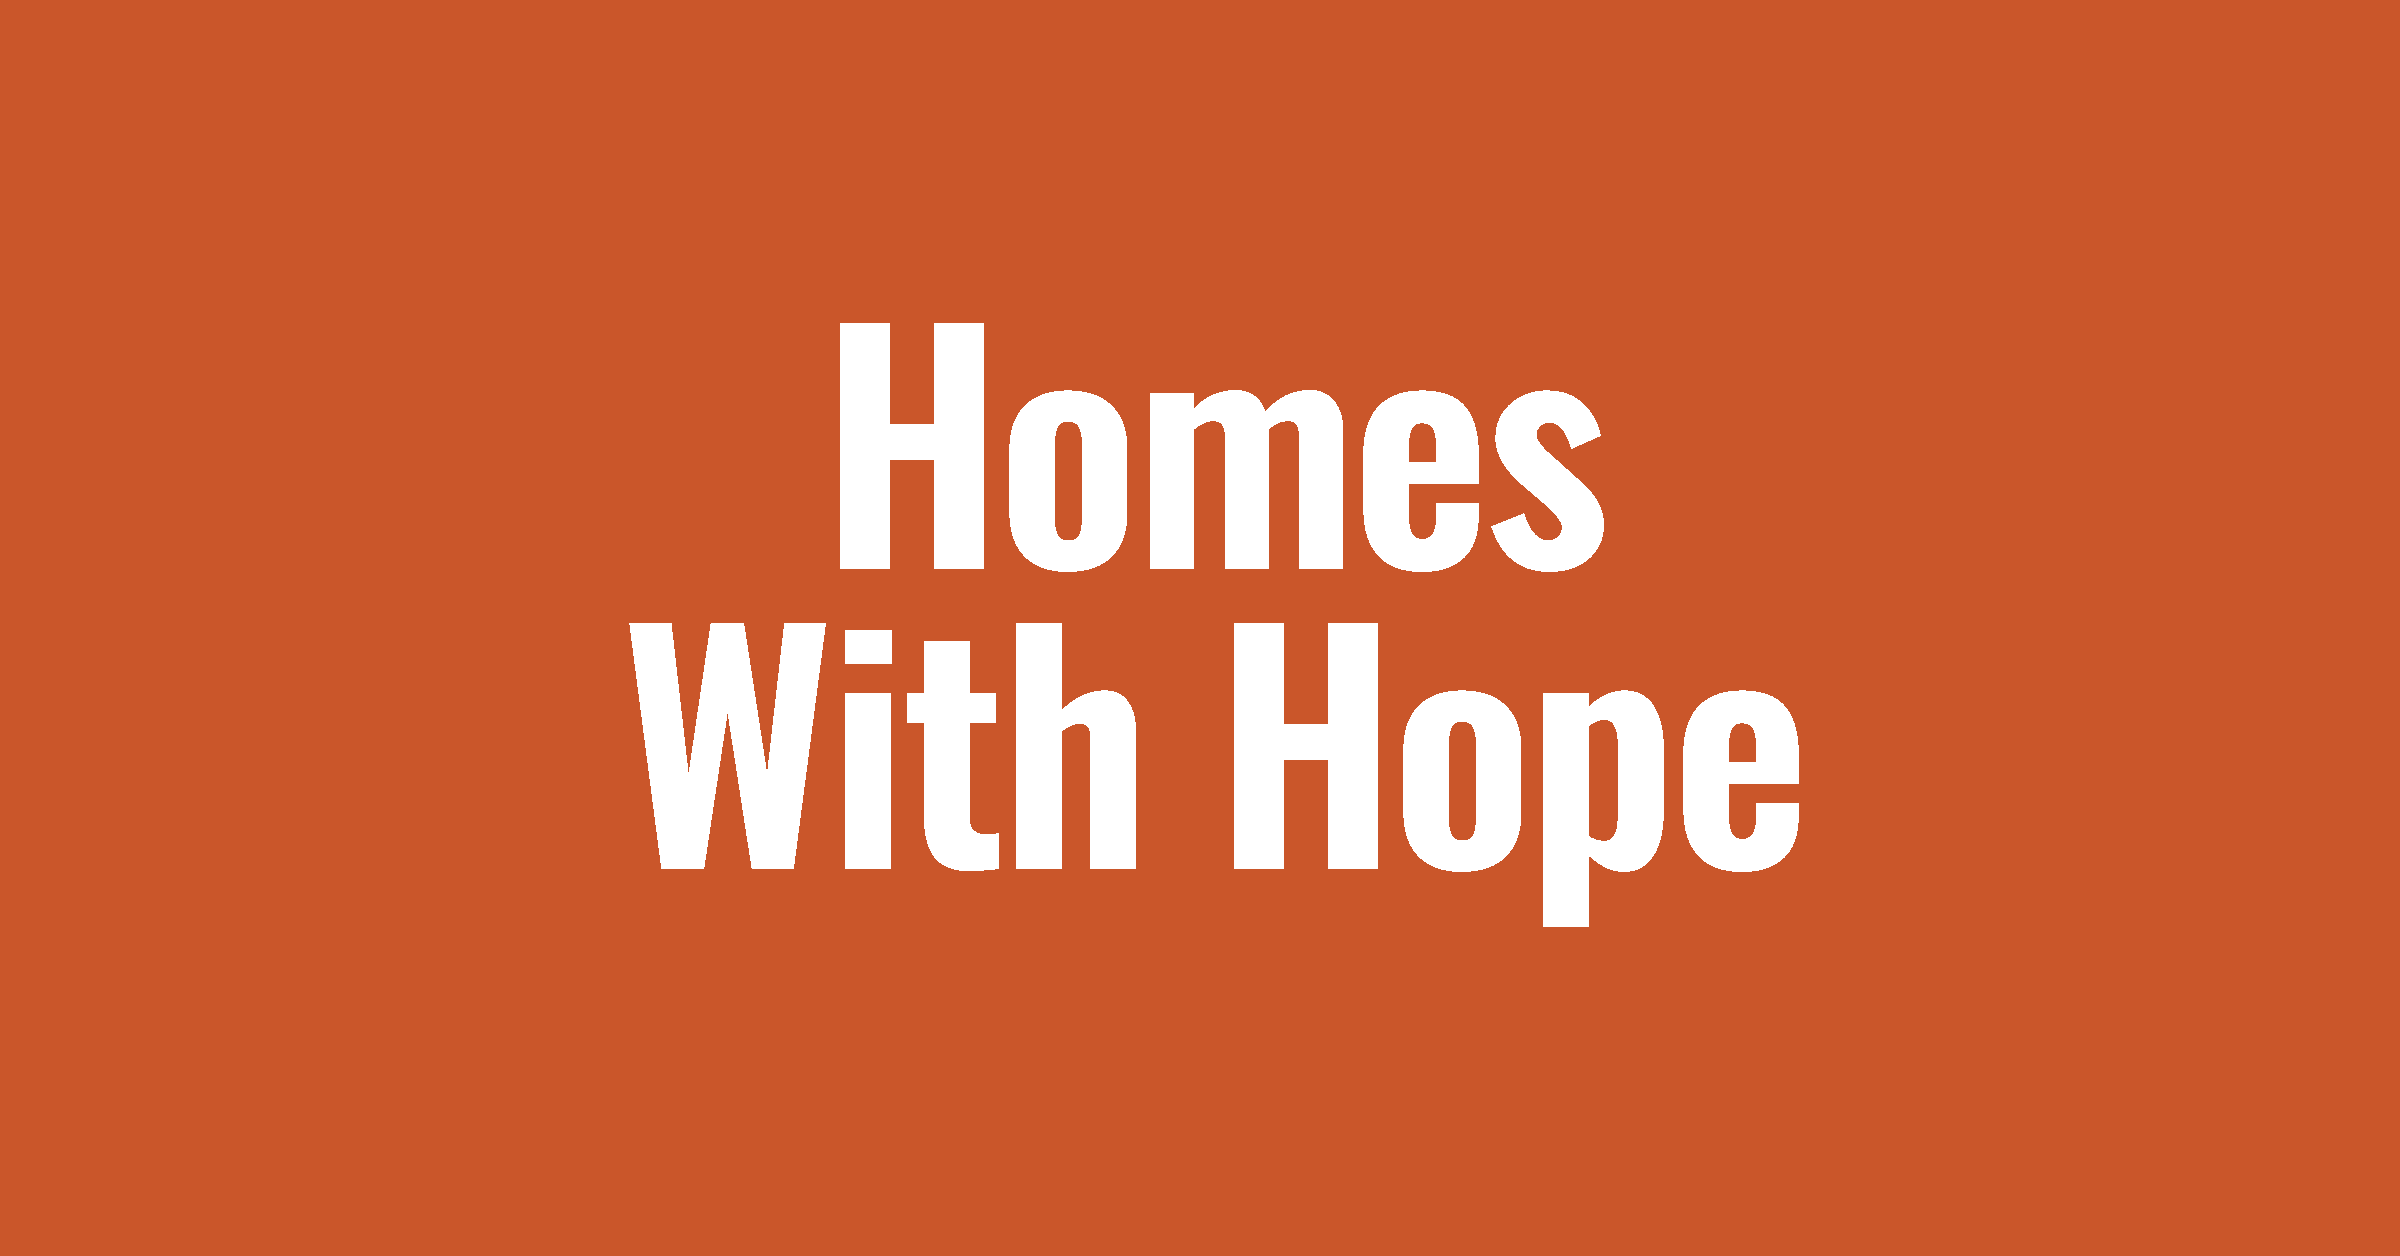 email link home with hope